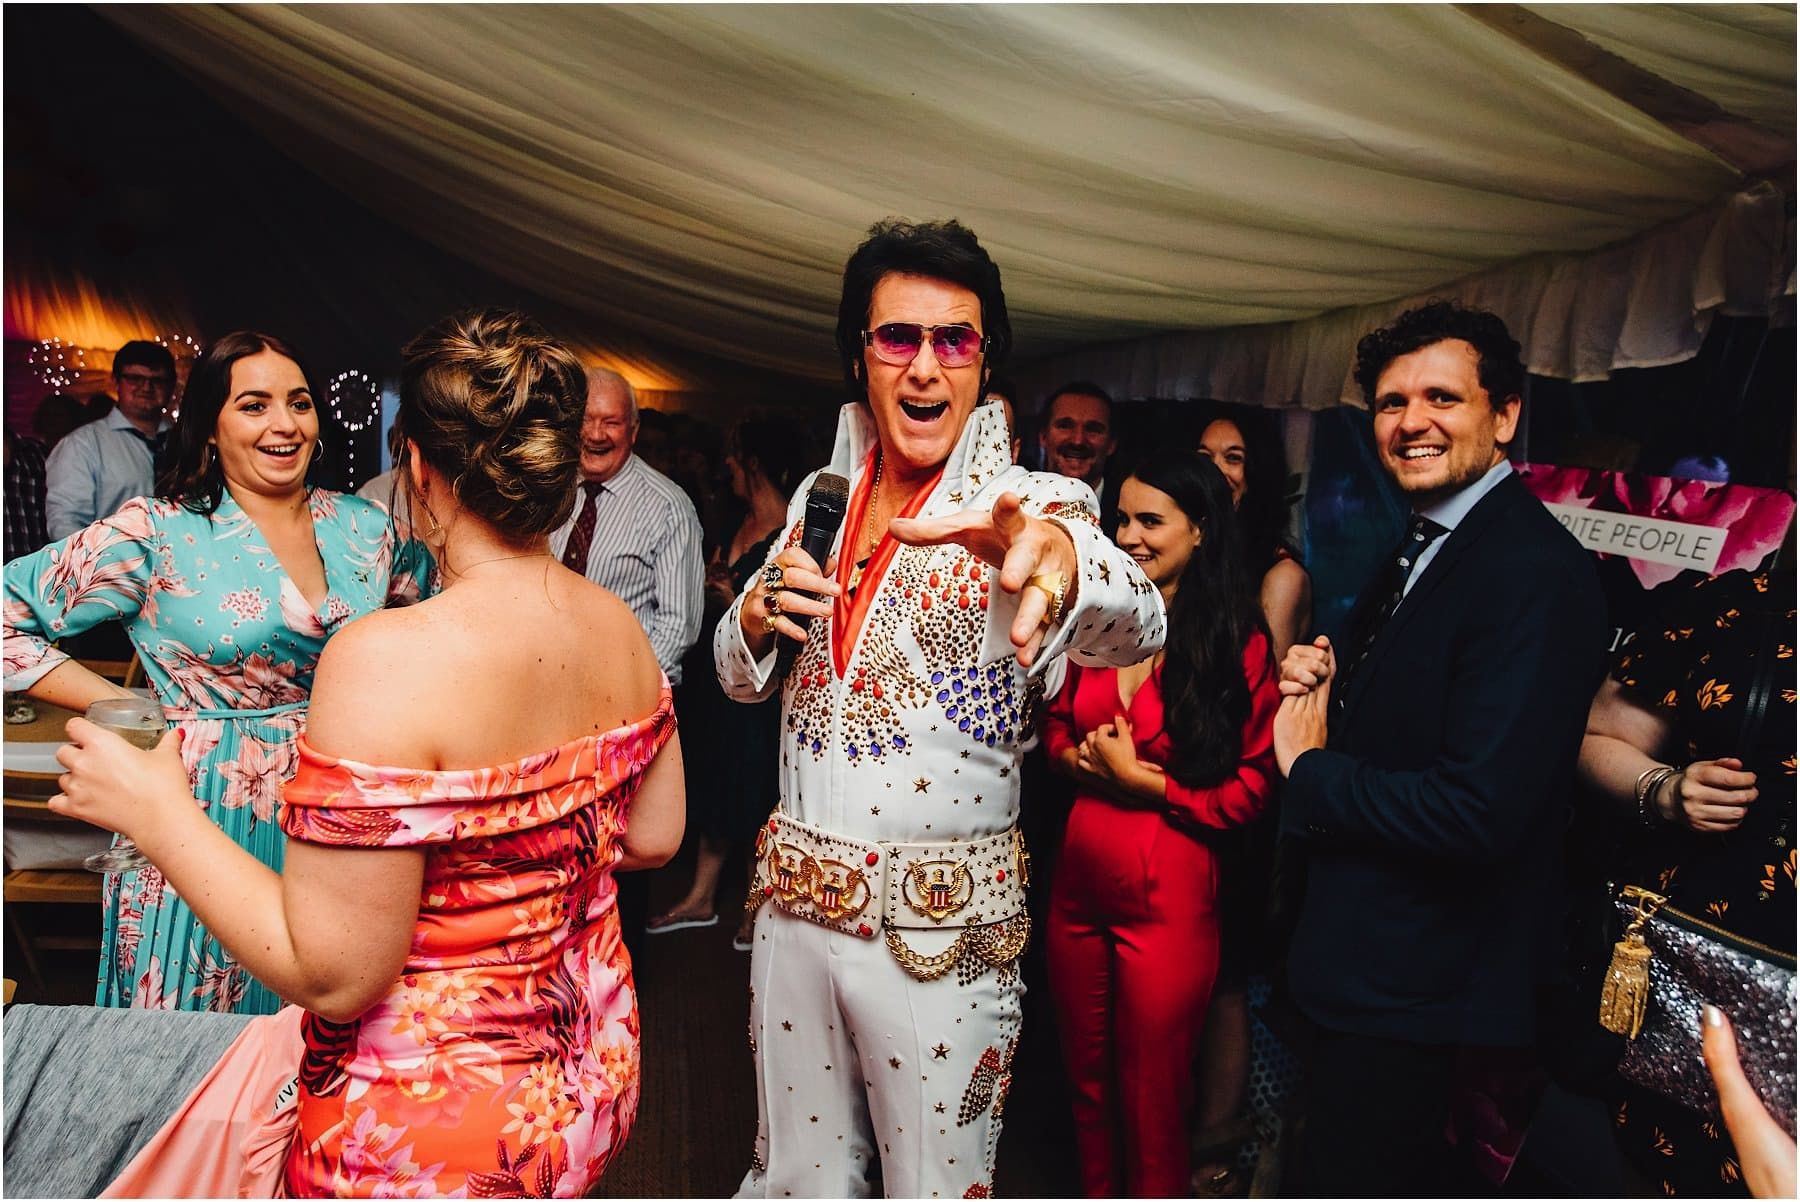 Elvis Impersonator arrives at wedding